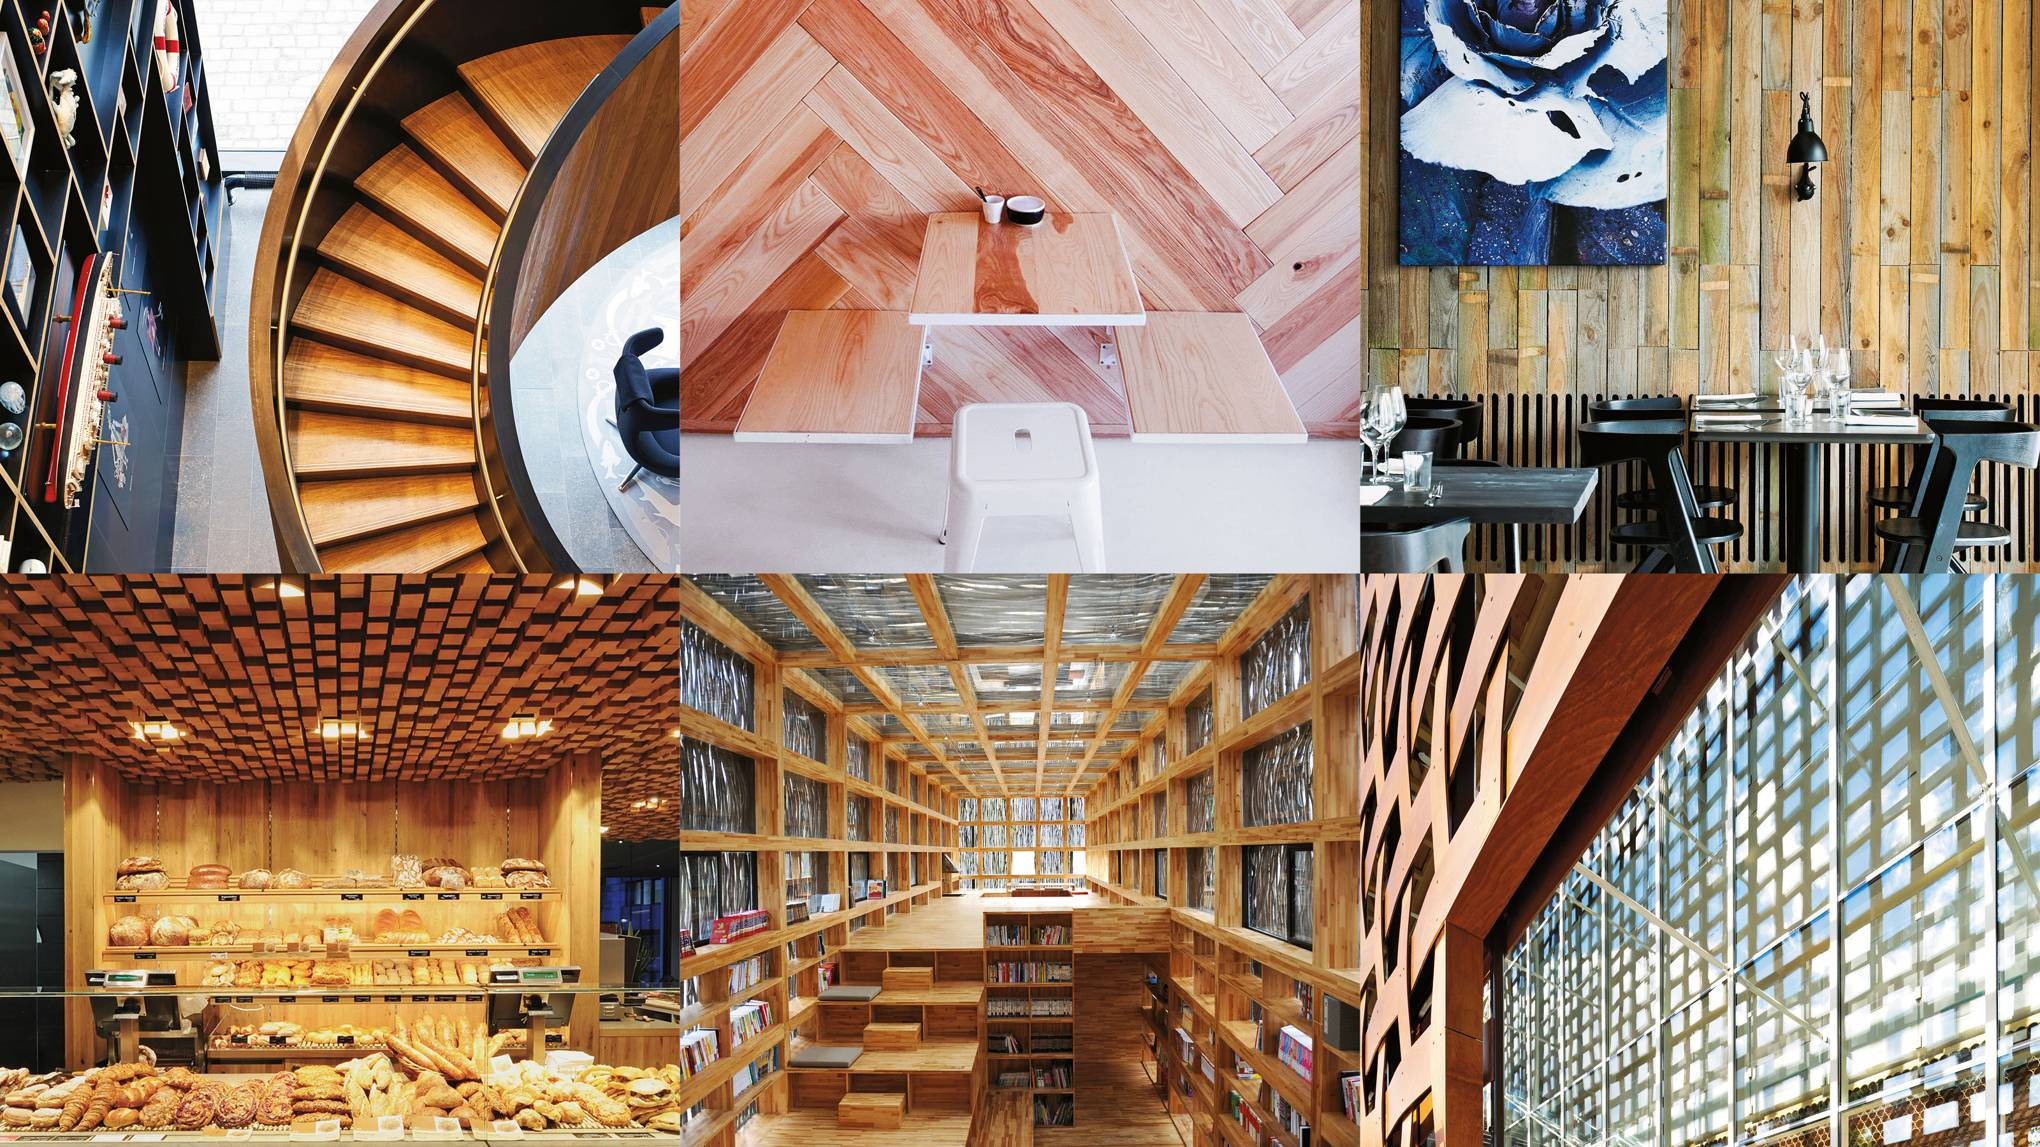 12 wooden designs from around the world